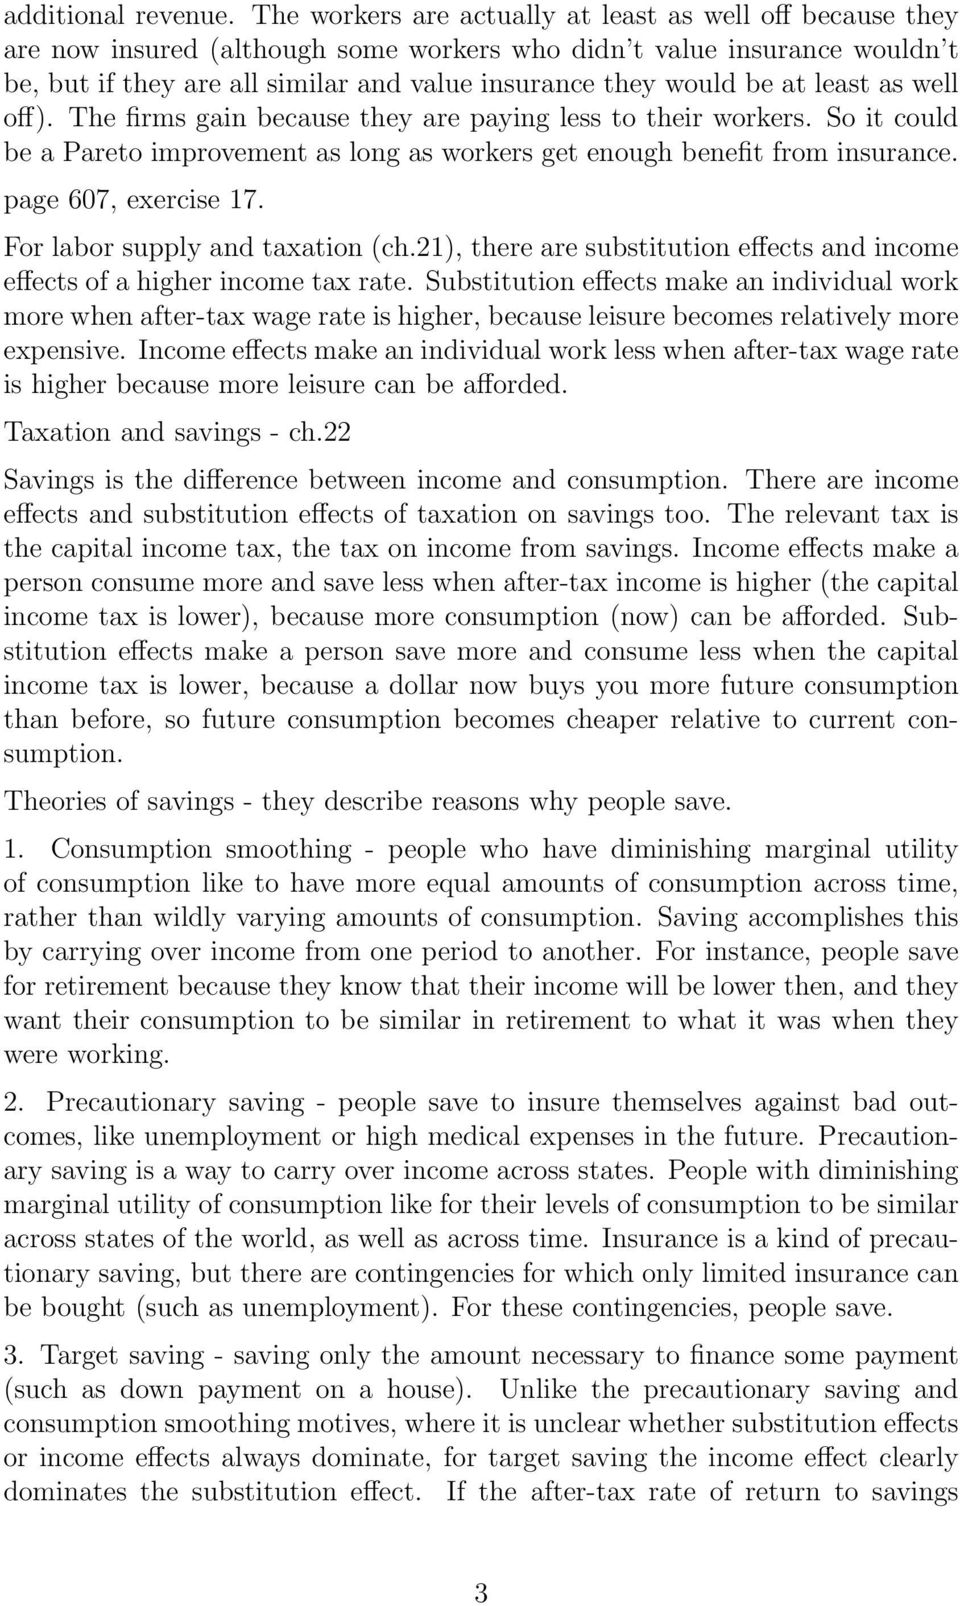 at least as well off). The firms gain because they are paying less to their workers. So it could be a Pareto improvement as long as workers get enough benefit from insurance. page 607, exercise 17.